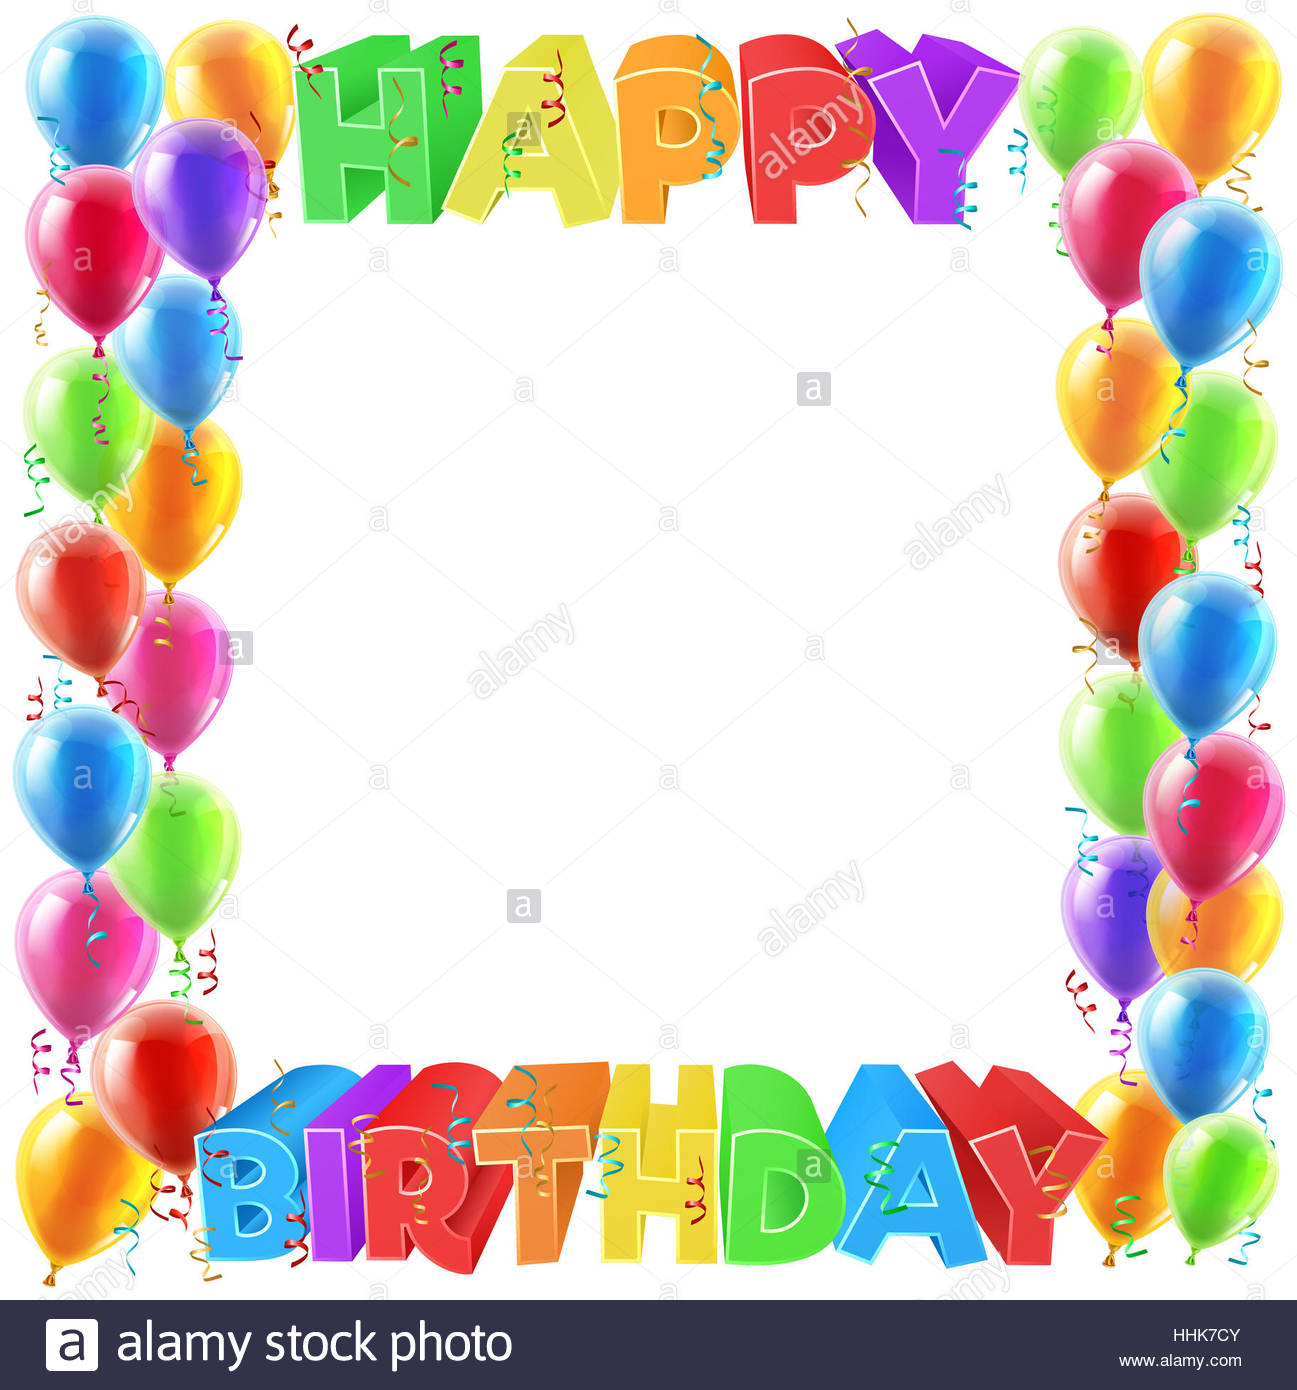 happy birthday border design ; a-balloons-and-happy-birthday-bright-color-word-text-sign-invite-border-HHK7CY